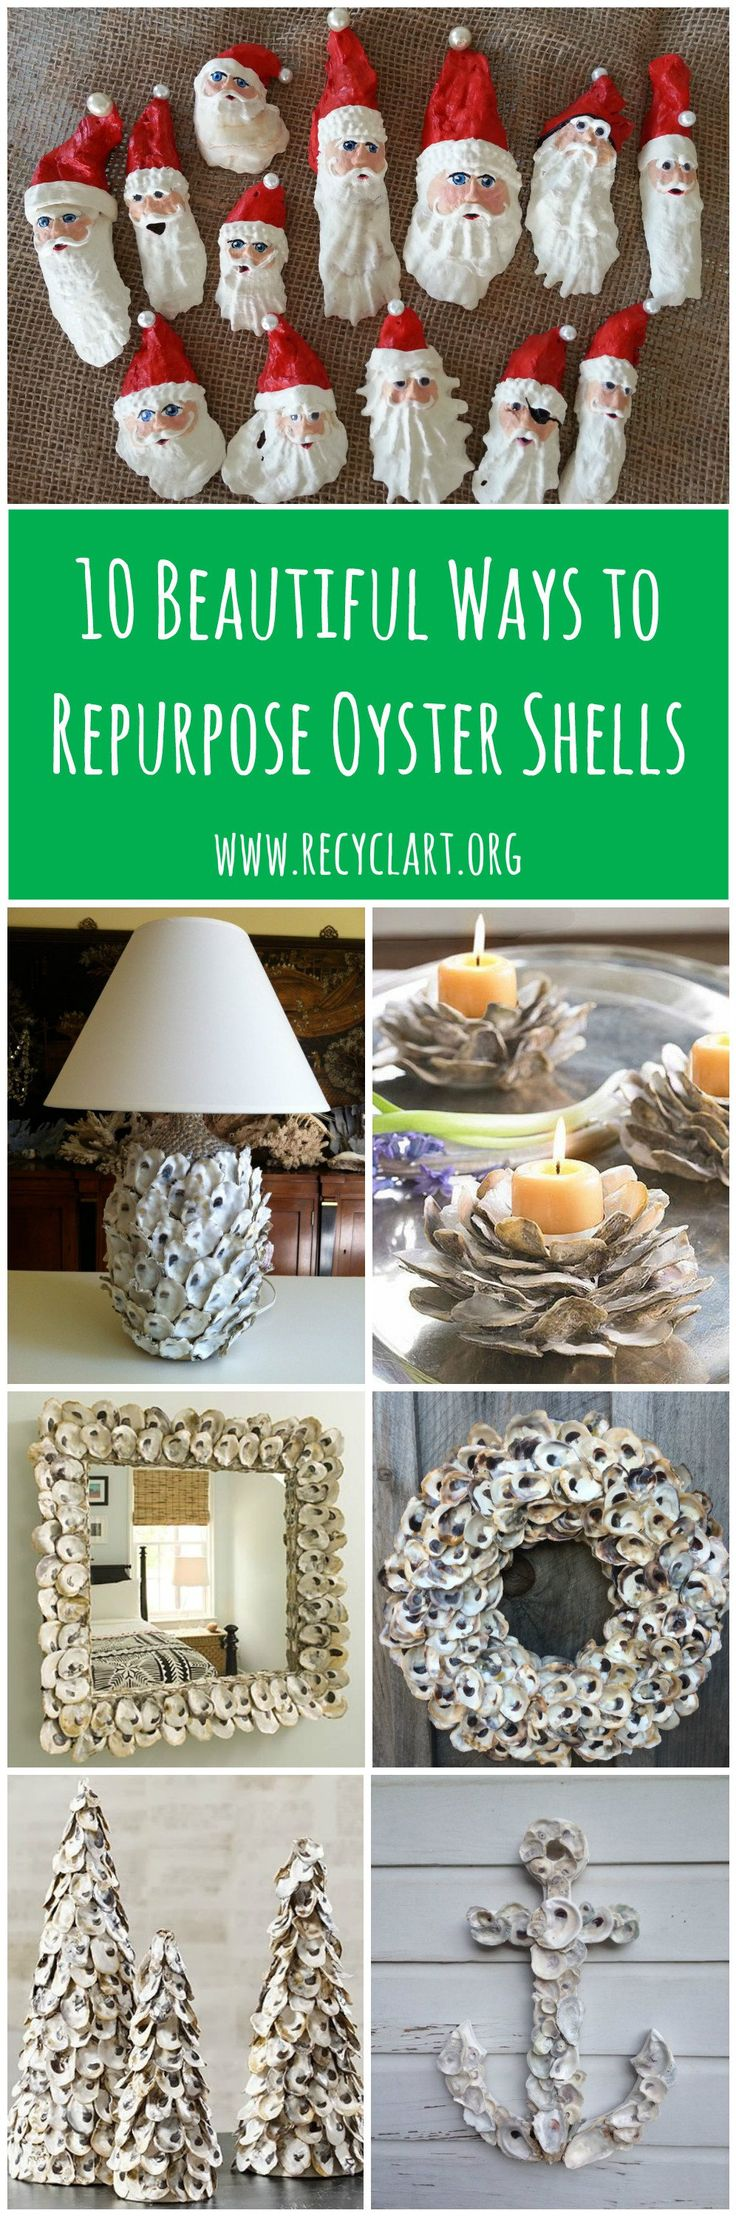 It's the first time we share with you some ideas of decorations made from upcycled Oyster shells! Oyster shells are …